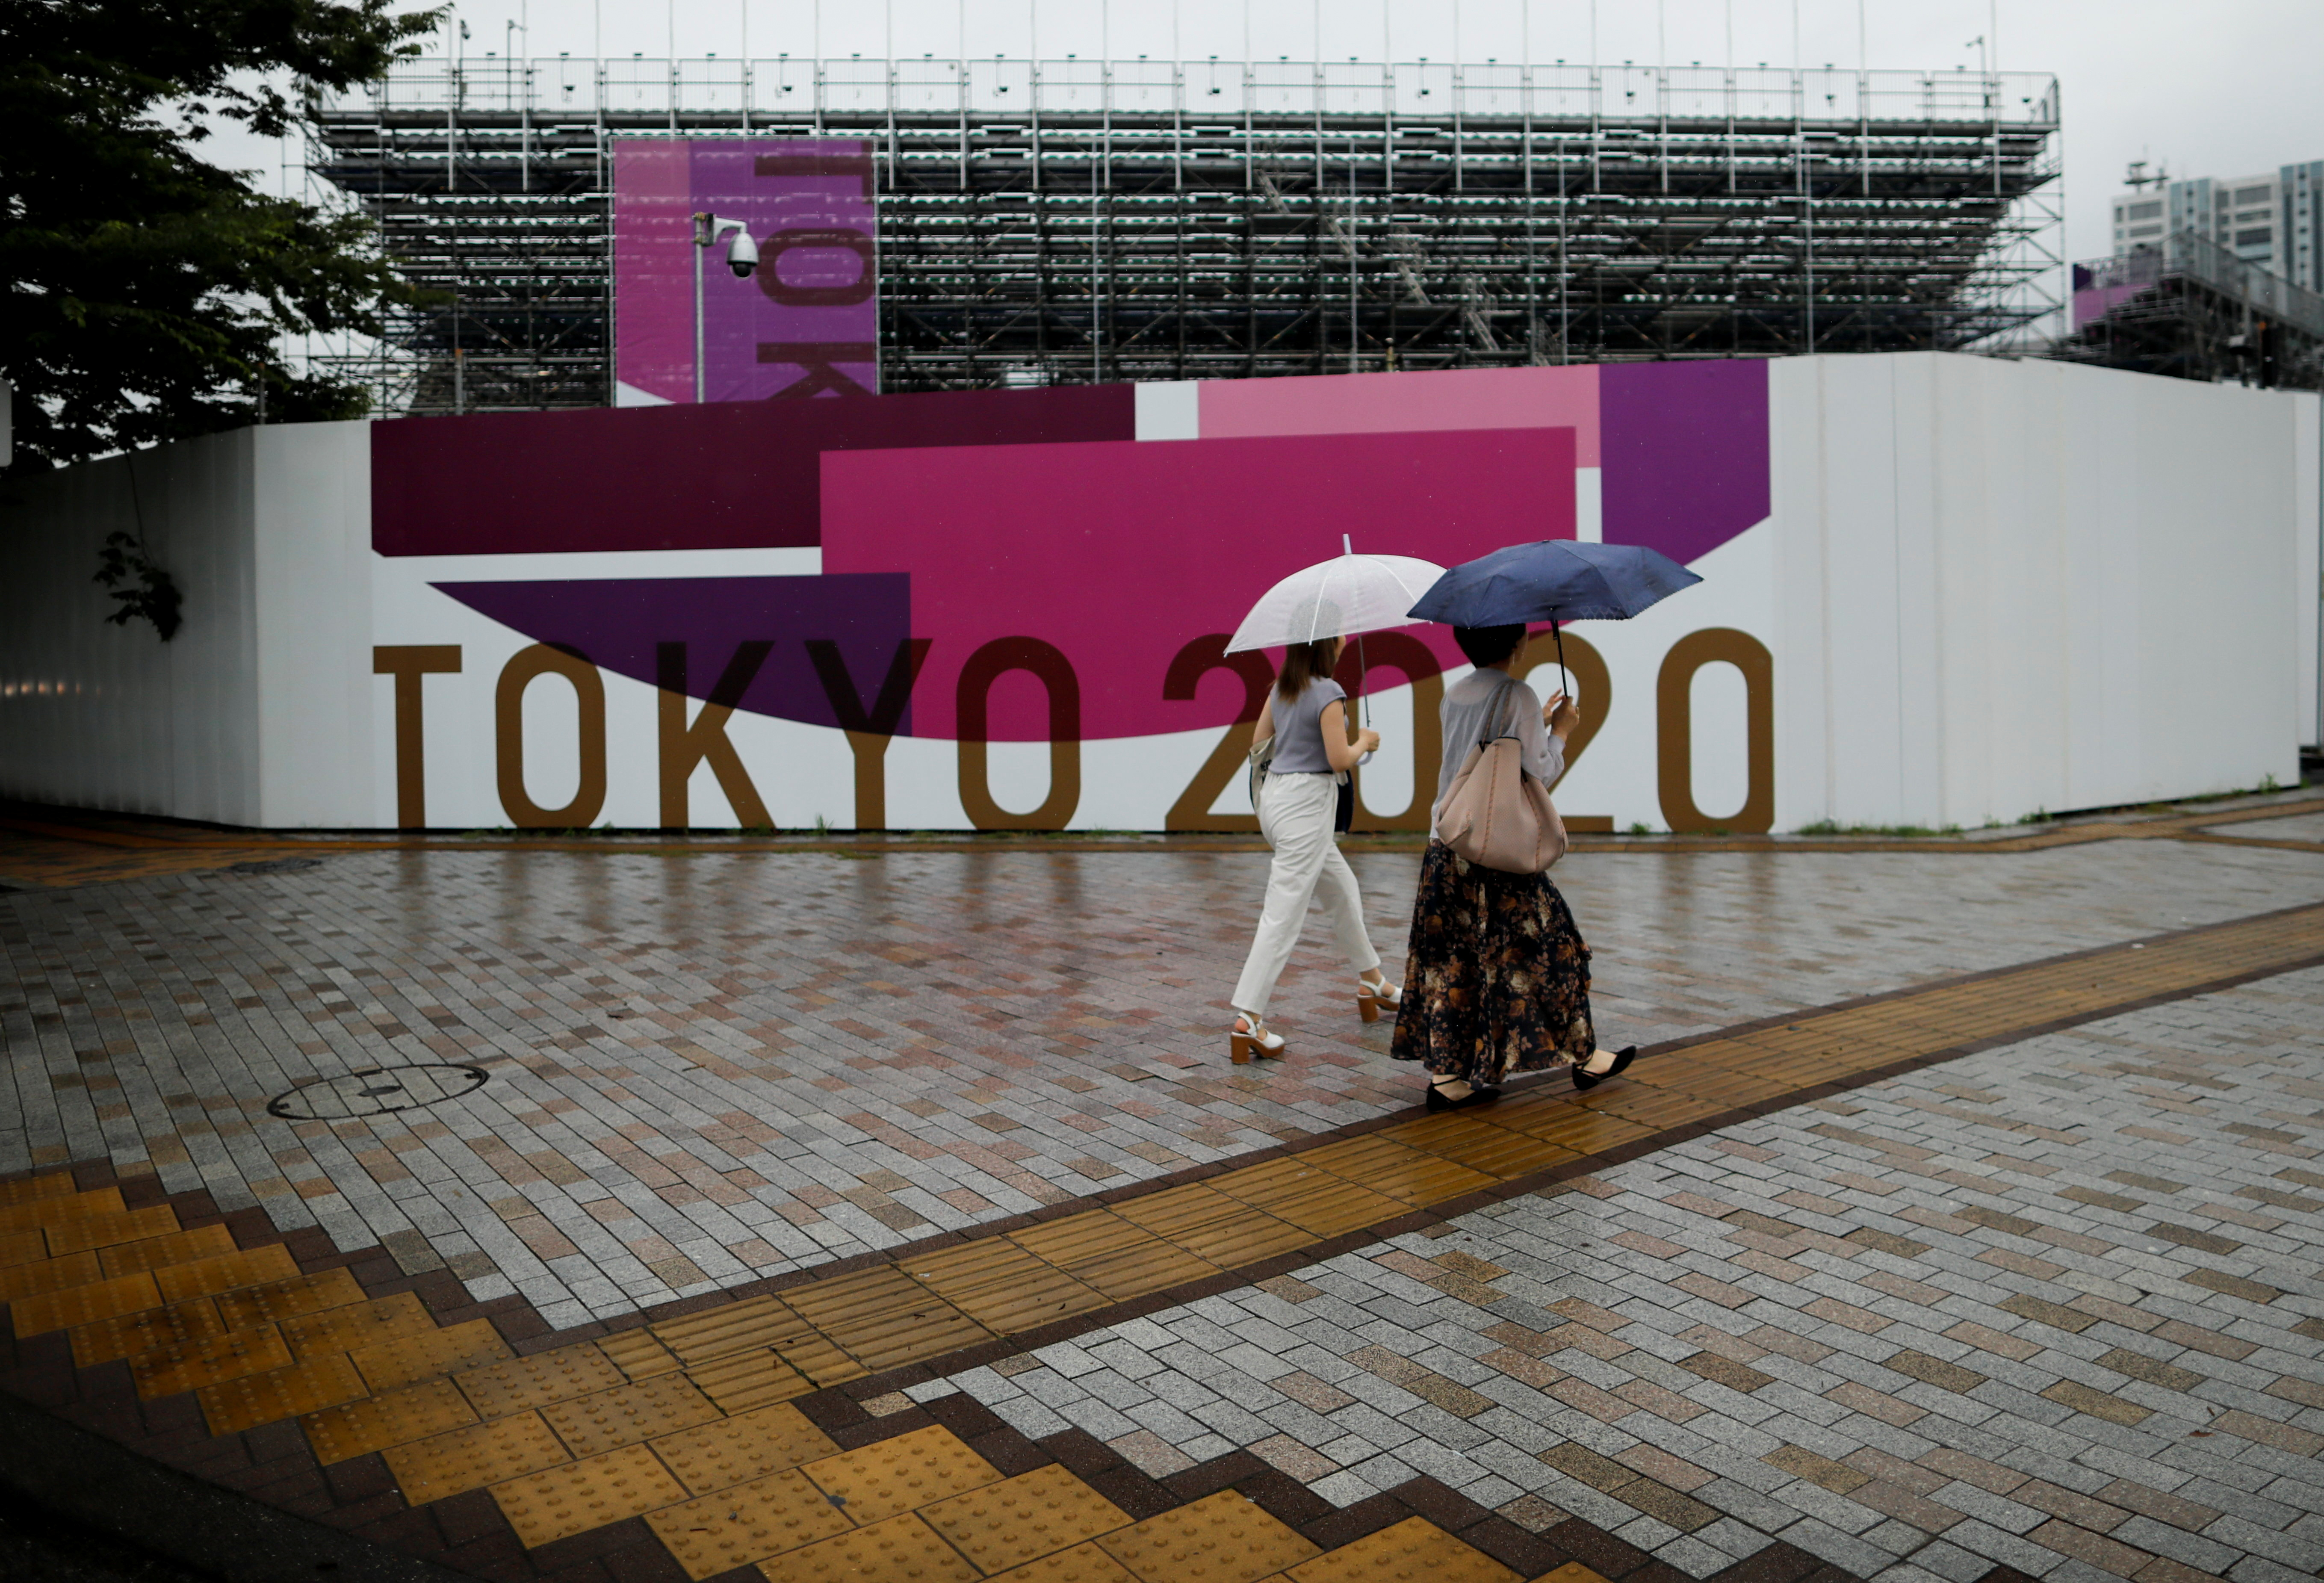 Scaffoldings for the spectator seats are seen at Aomi Urban Sports Park, ahead of the opening of the 2020 Tokyo Olympic Games that have been postponed to 2021 due to the coronavirus disease (COVID-19) outbreak, in Tokyo, Japan July 8, 2021.  REUTERS/Issei Kato